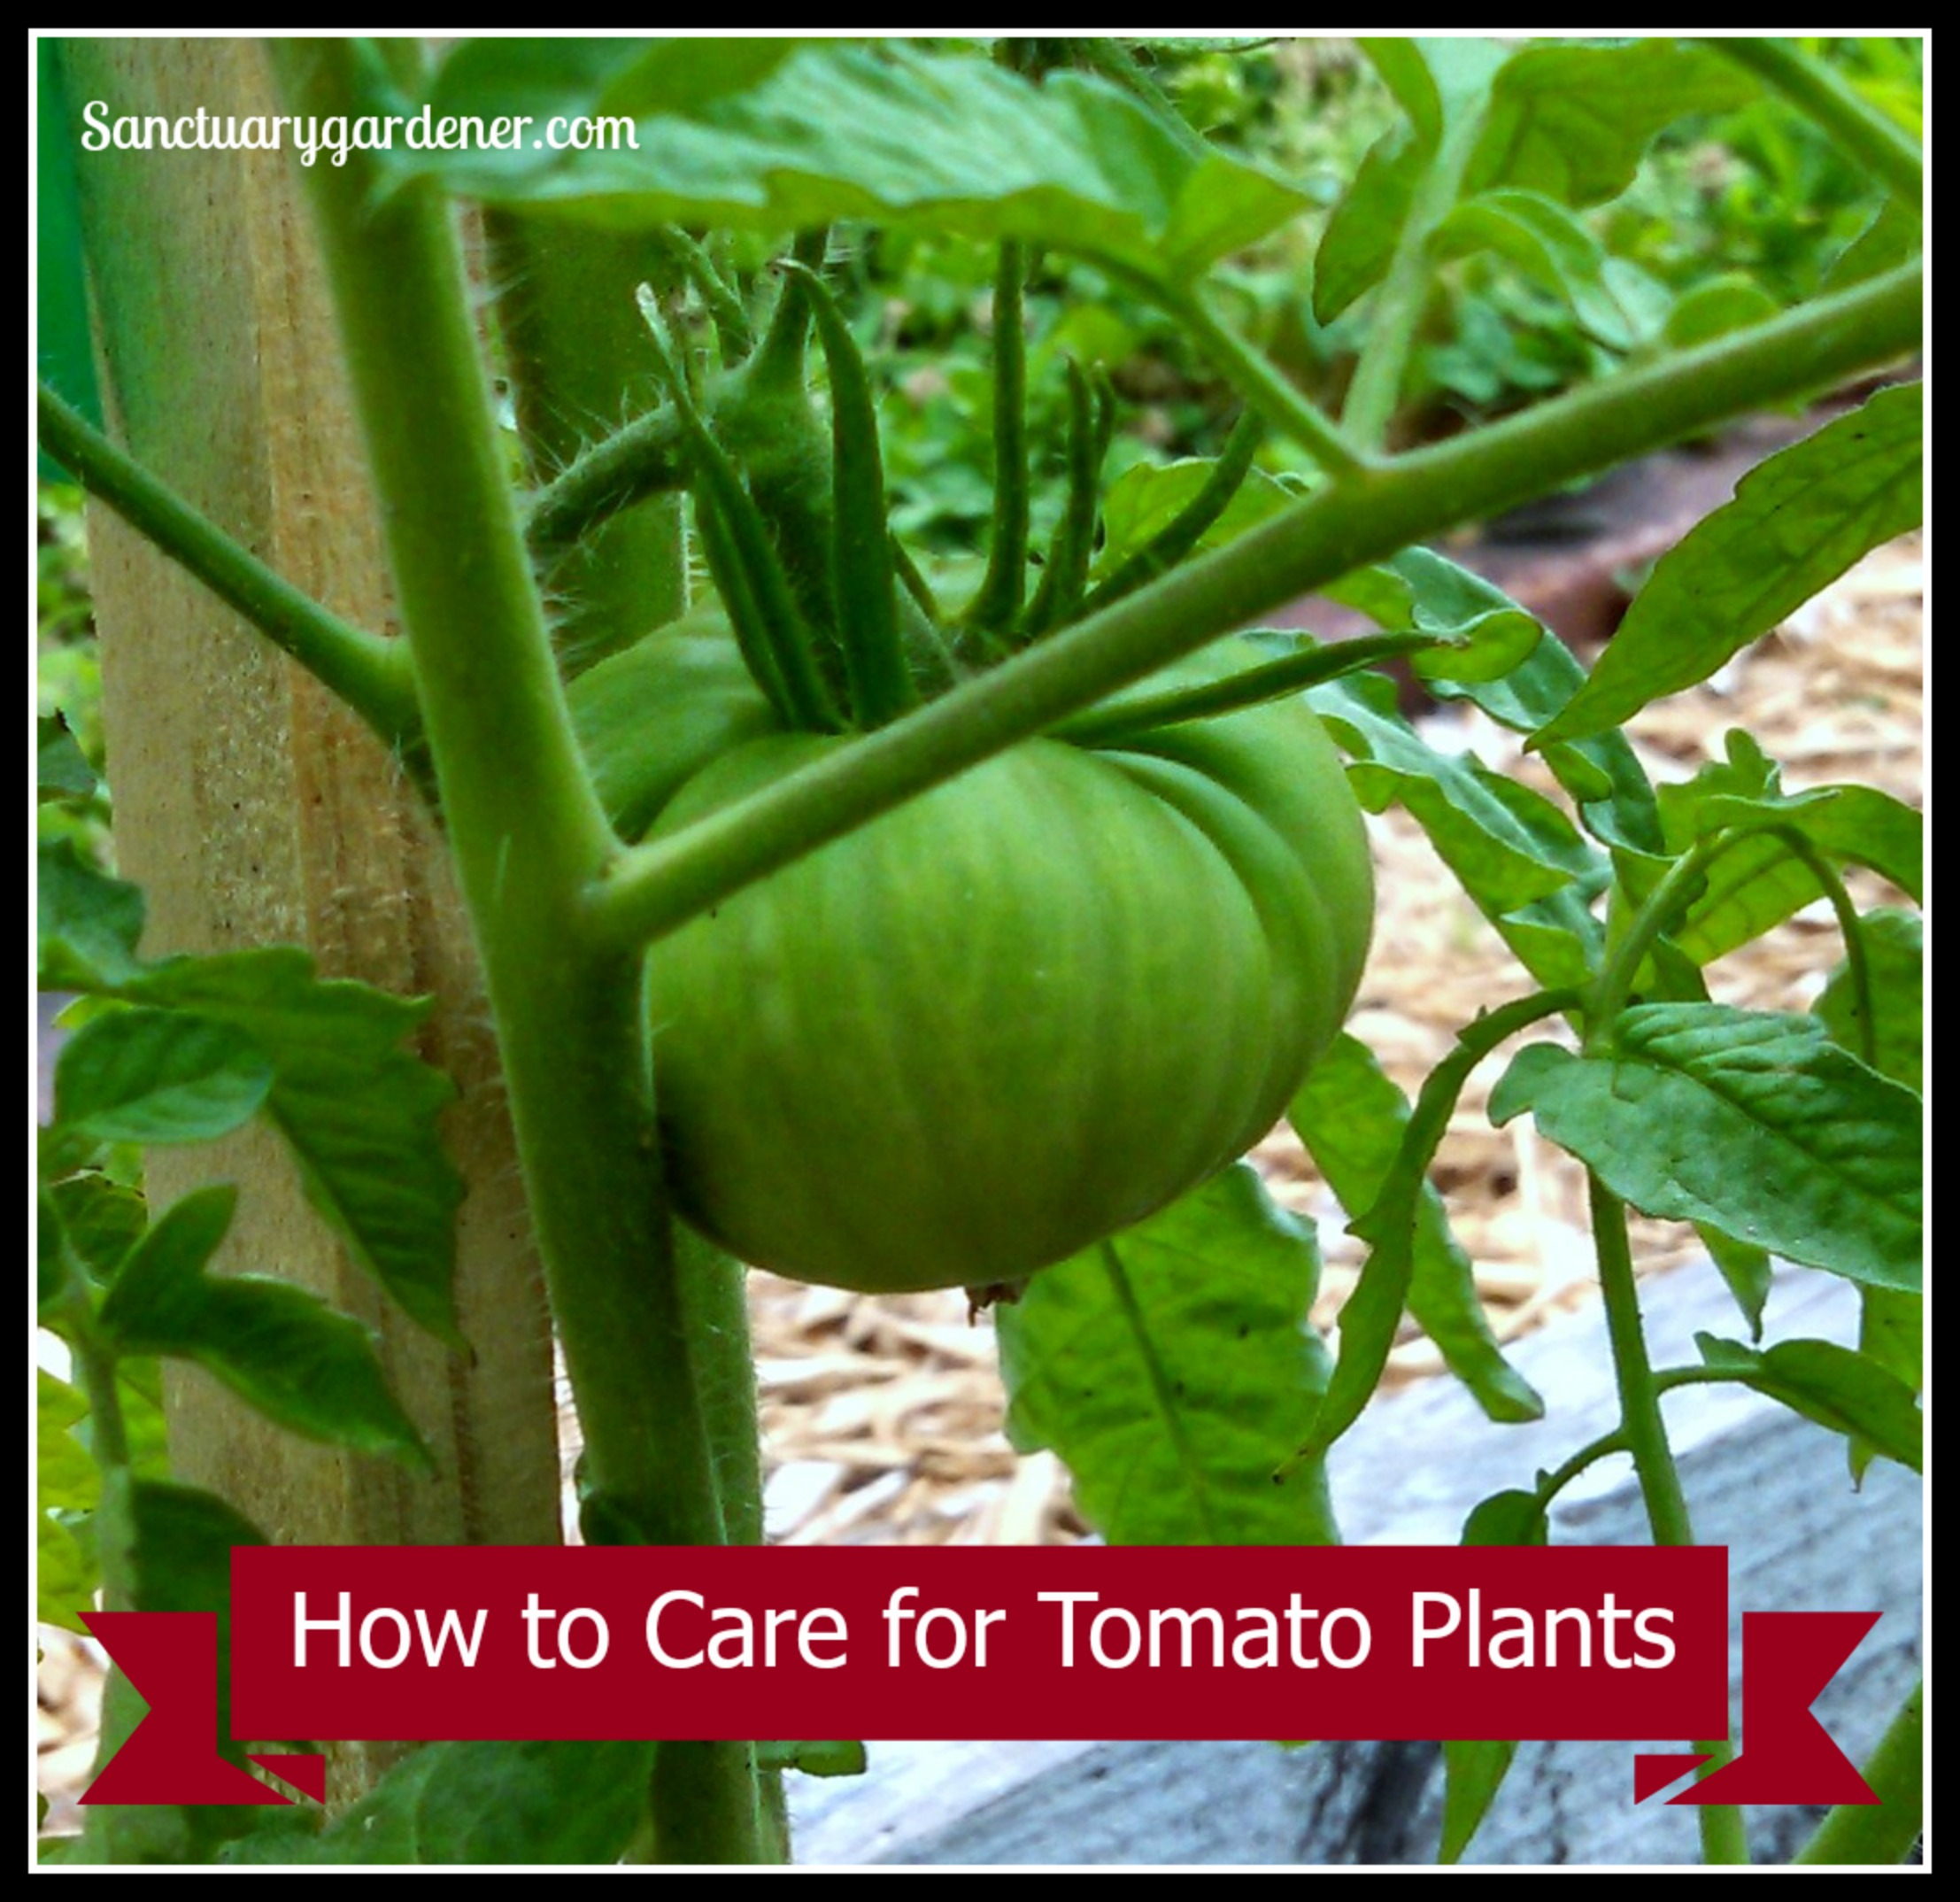 how to care for tomato plants sanctuary gardener. Black Bedroom Furniture Sets. Home Design Ideas